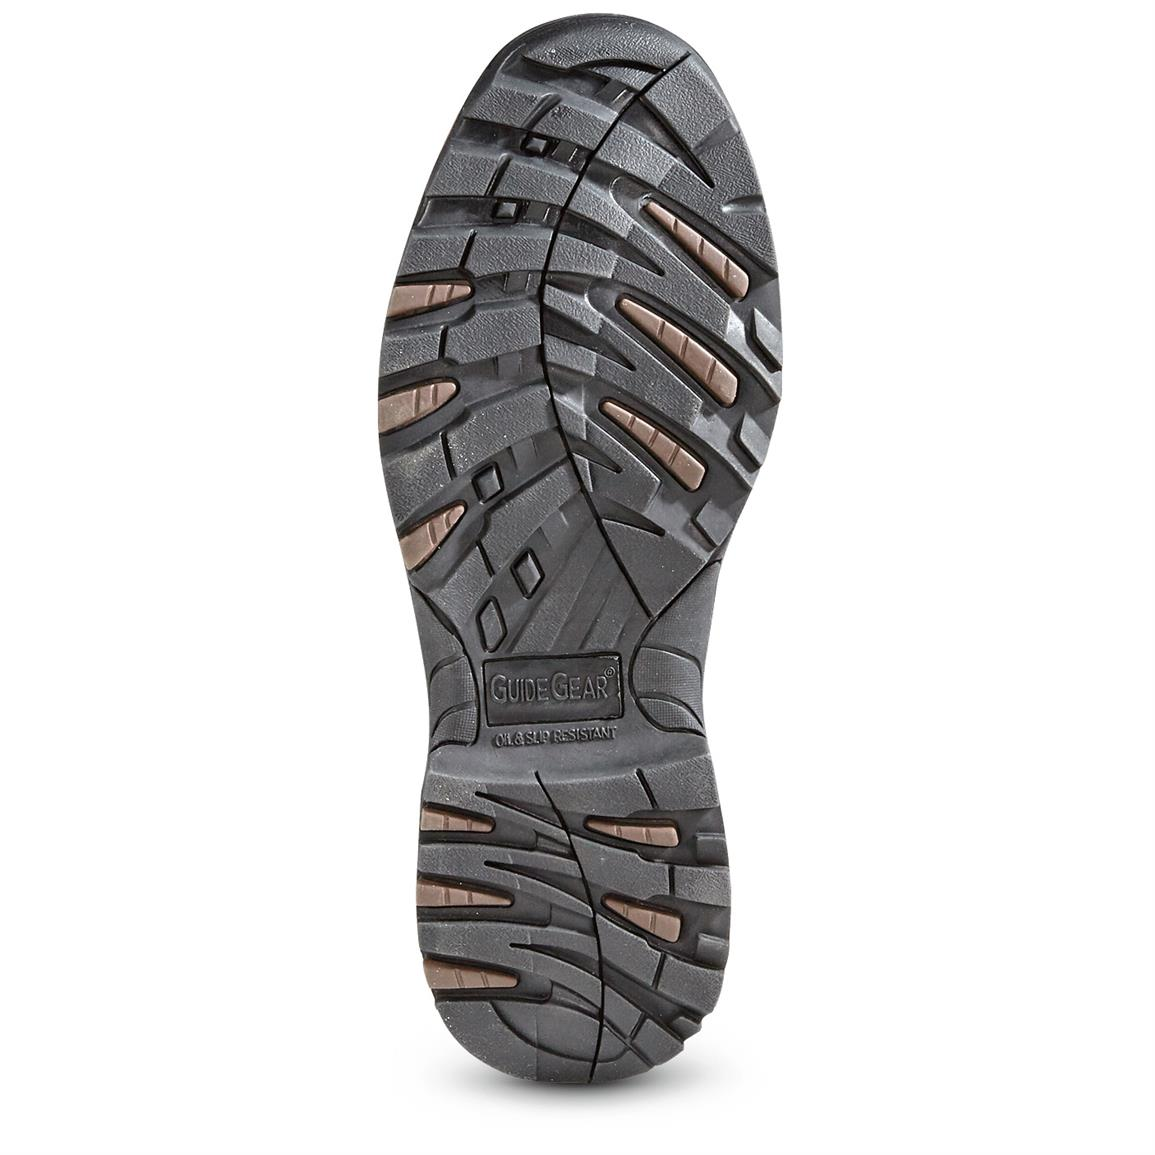 Rugged traction rubber outsole